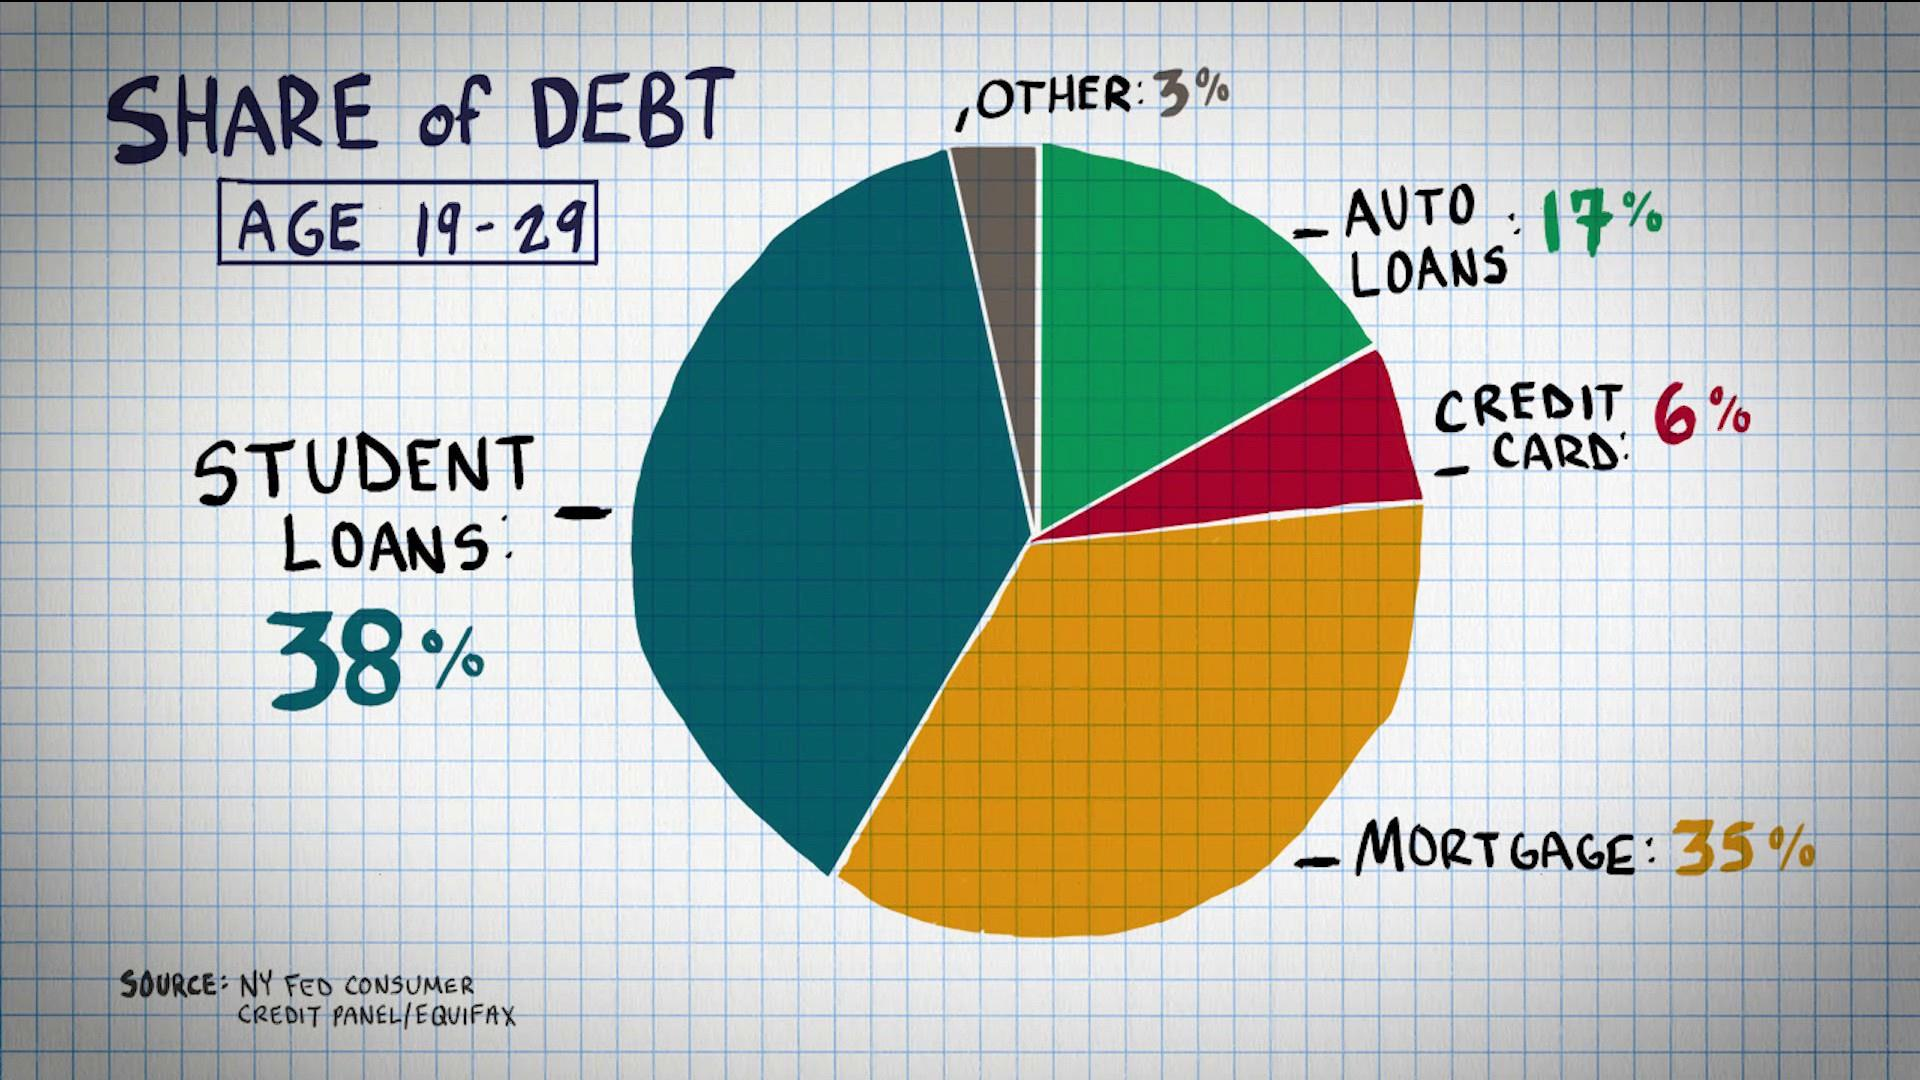 Why are millennials racking up so much debt?